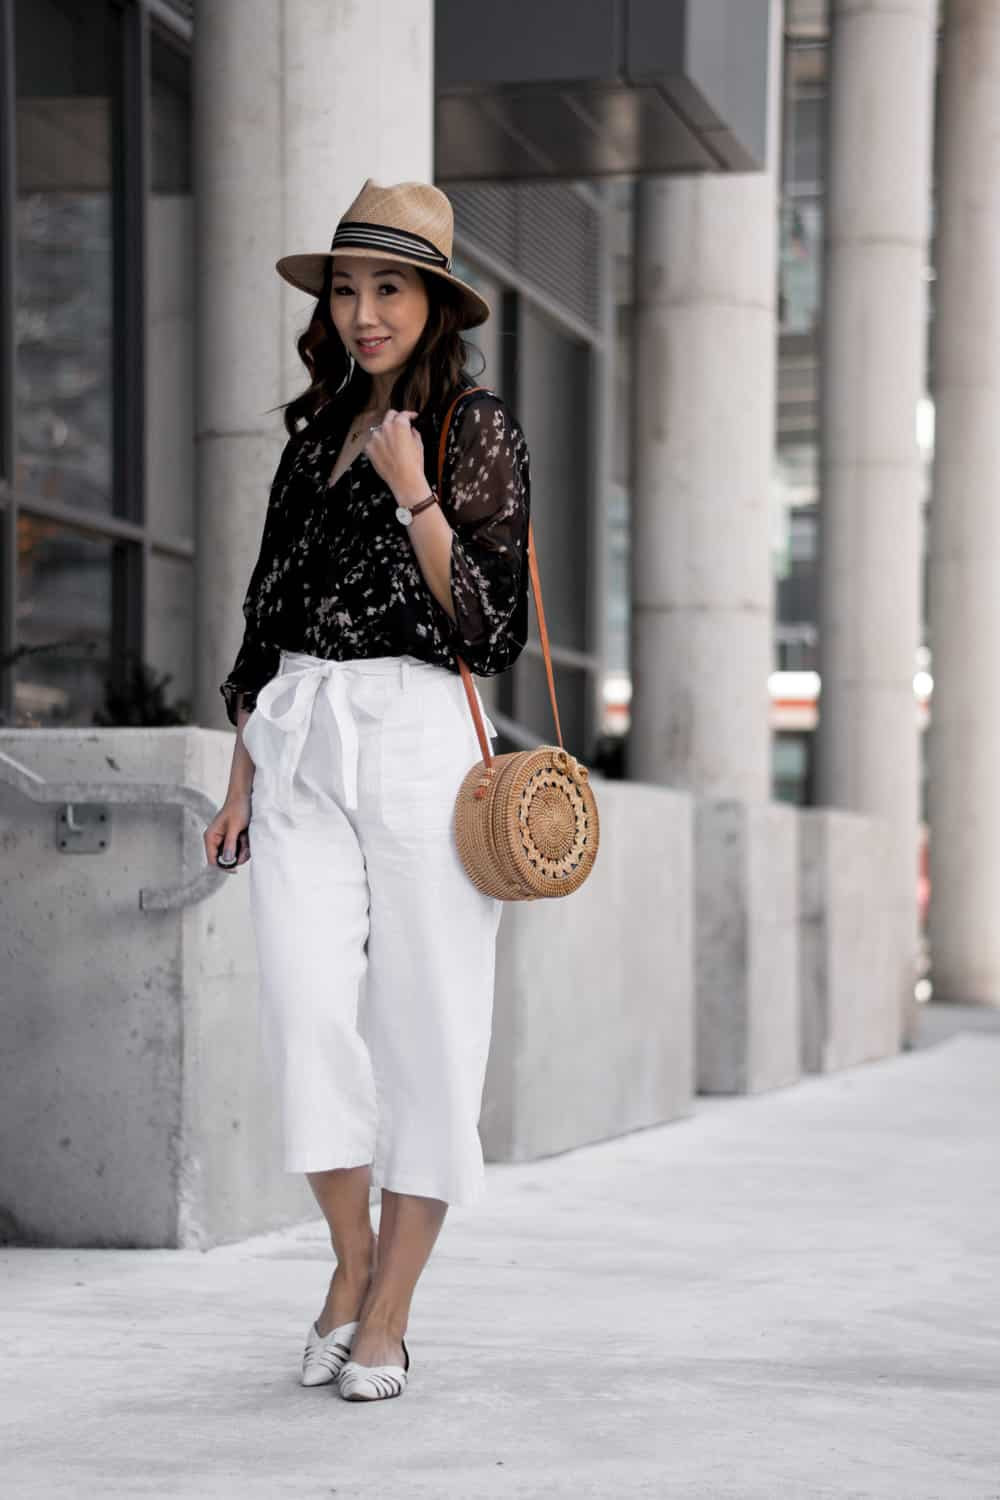 Summer #LOTD: White culottes, print blouse from Alison Sheri, Bali basket bag, Vince Camuto flats